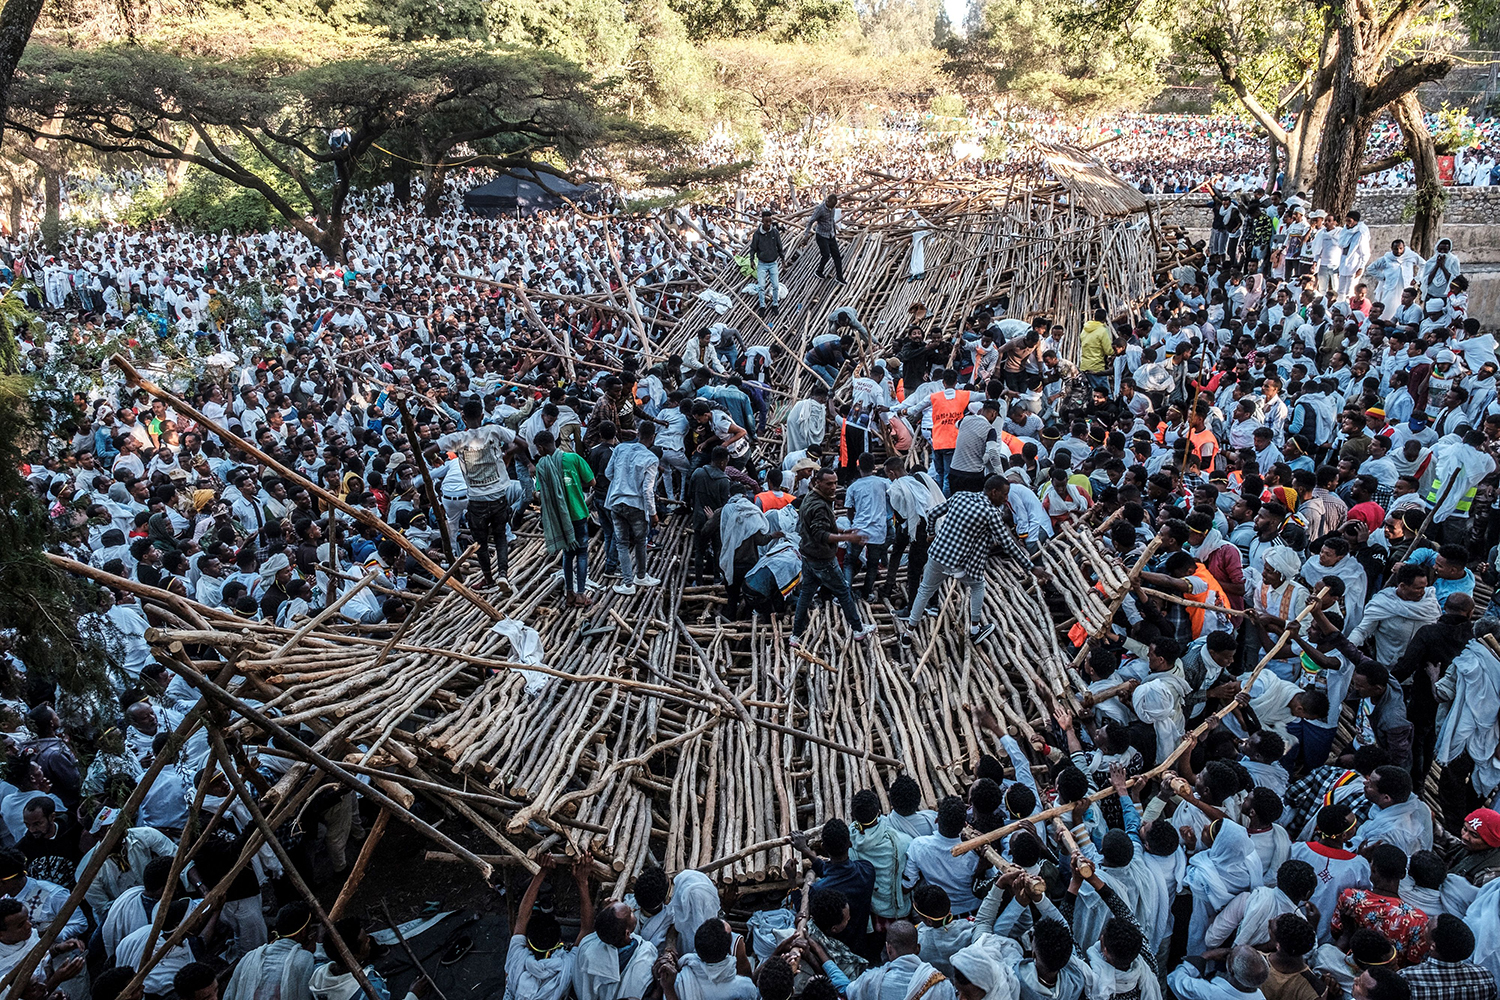 A crowd removes the scaffolding of a structure that collapsed during the celebration of Timkat, the Ethiopian Epiphany, in Gondar on Jan. 20. At least 10 people were killed and about 100 injured when the platform on which they sat while attending the Orthodox Epiphany Festival collapsed. EDUARDO SOTERAS/AFP via Getty Images